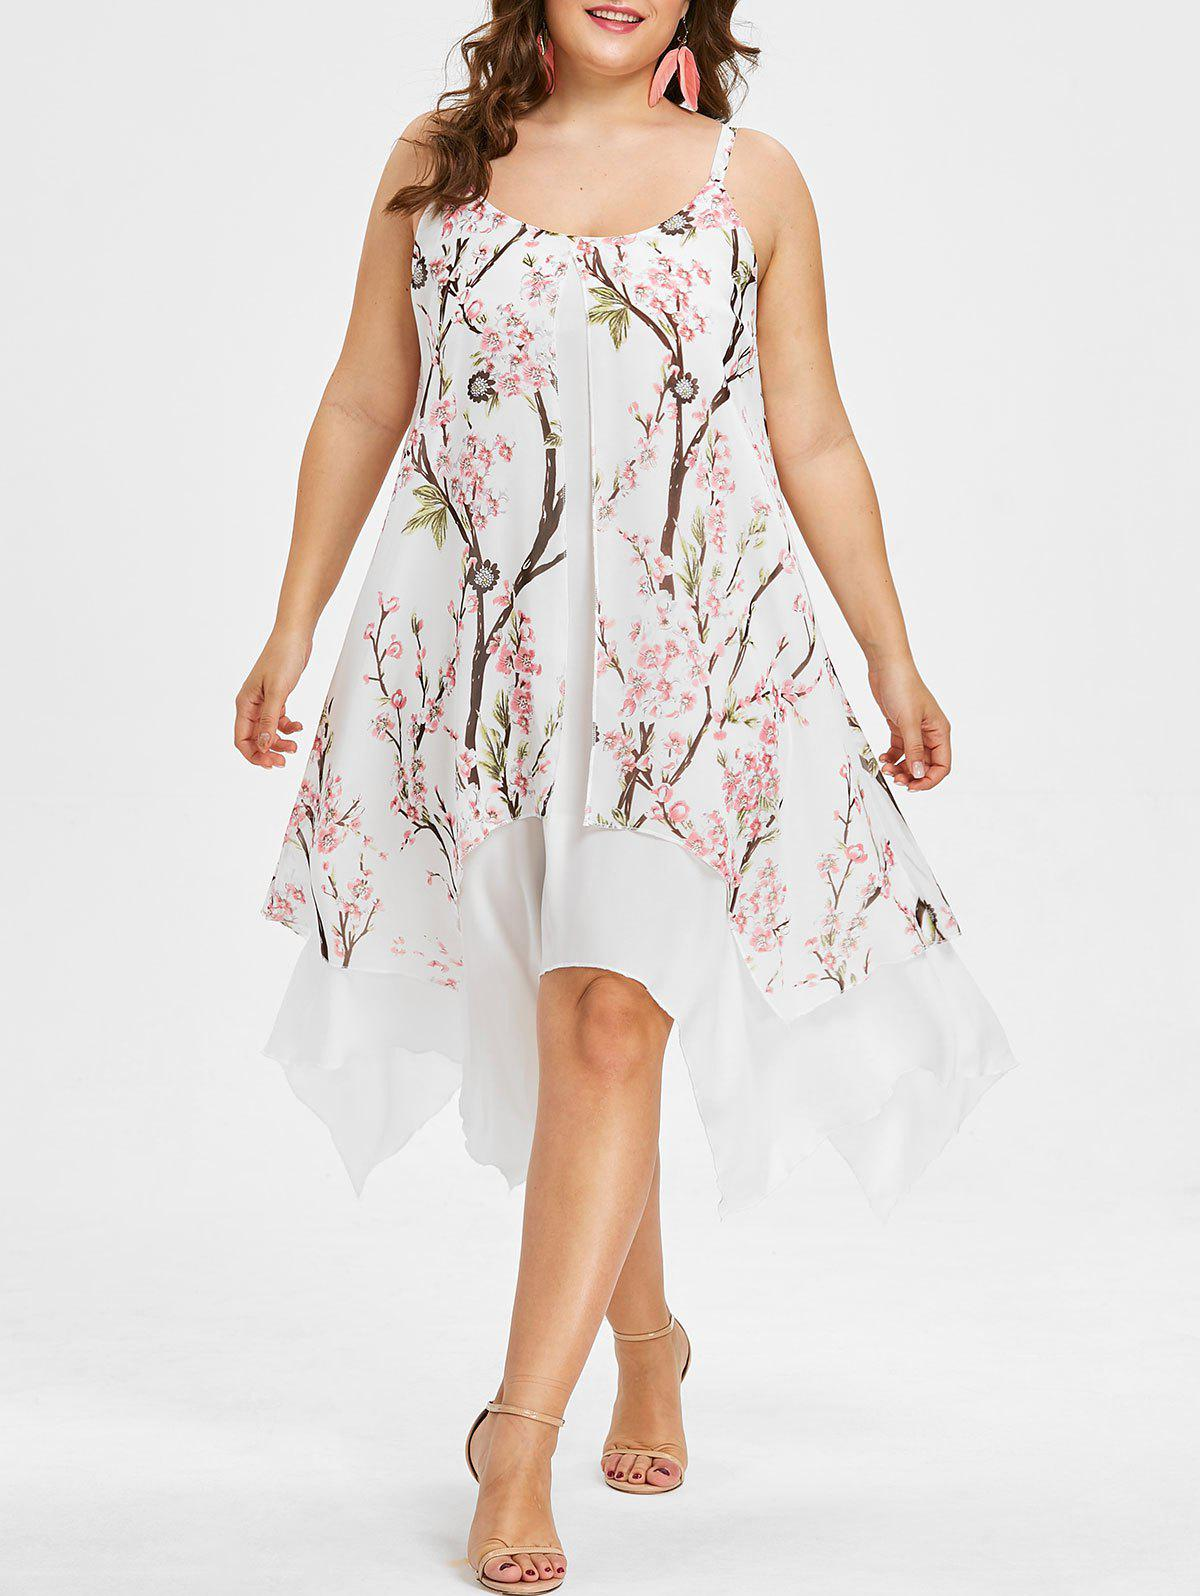 Shop Plus Size Flower Handkerchief Dress